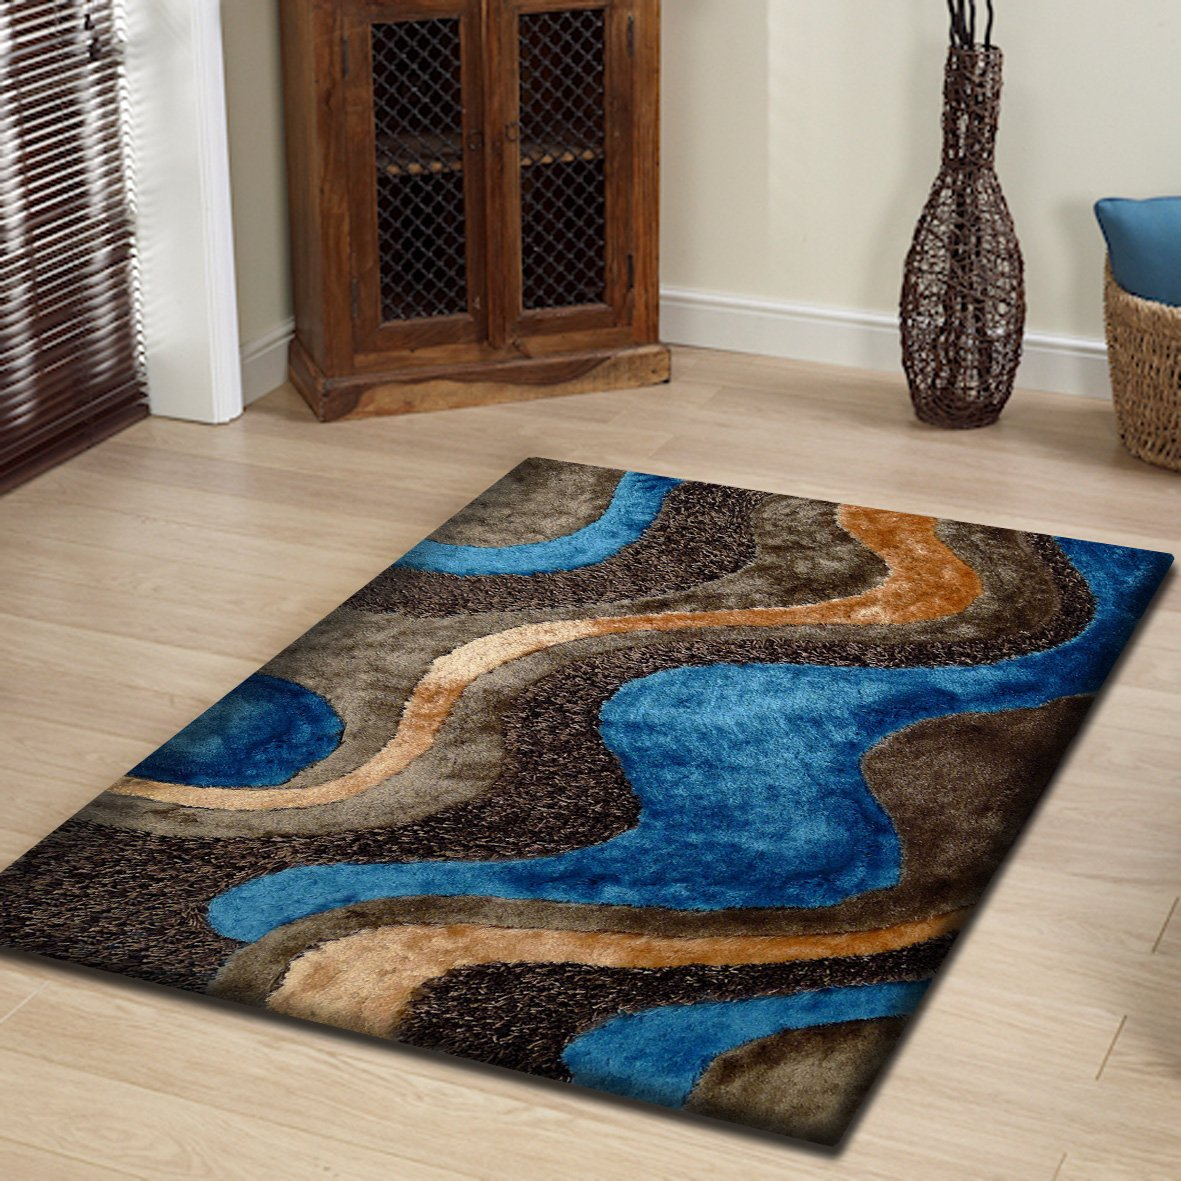 Amazon com beautiful hand made brown blue shag area rug exact size 76 x 103 ft kitchen dining